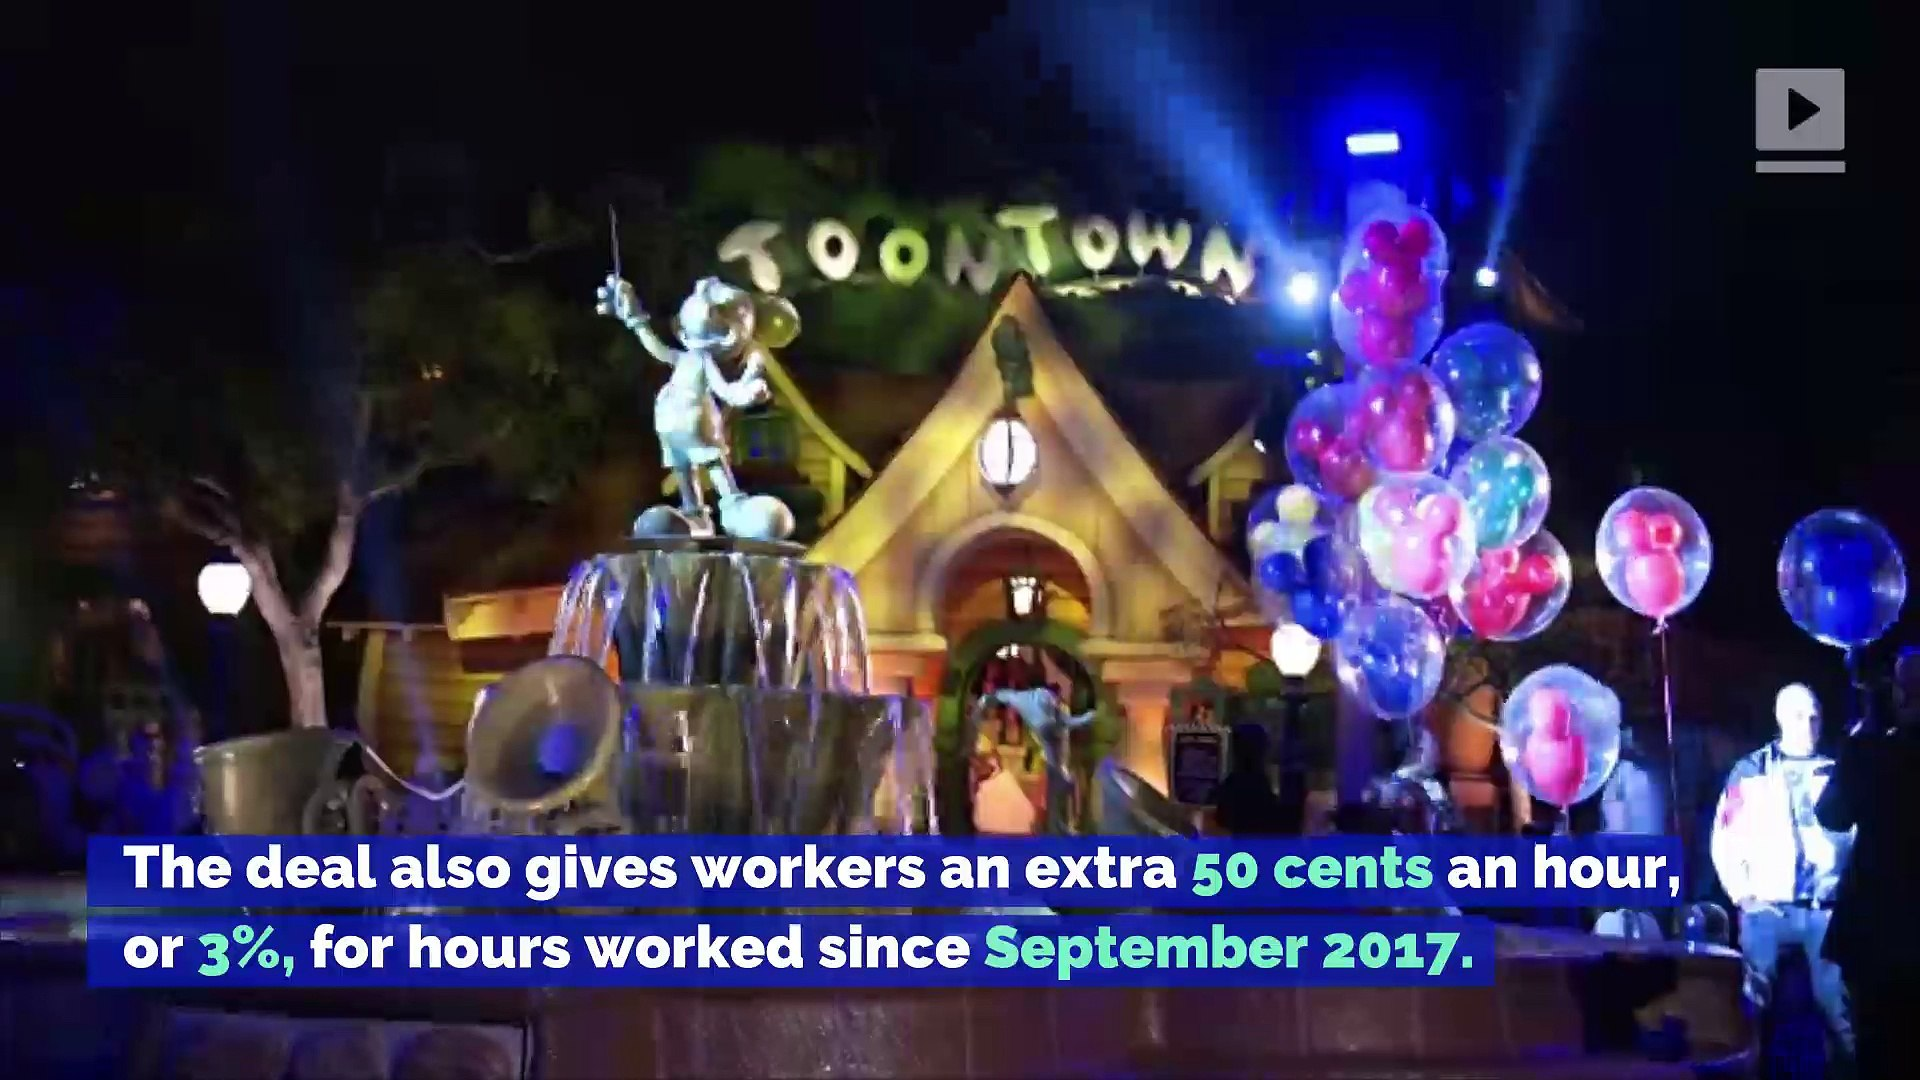 Disney Park Employees Win $15 Minimum Wage